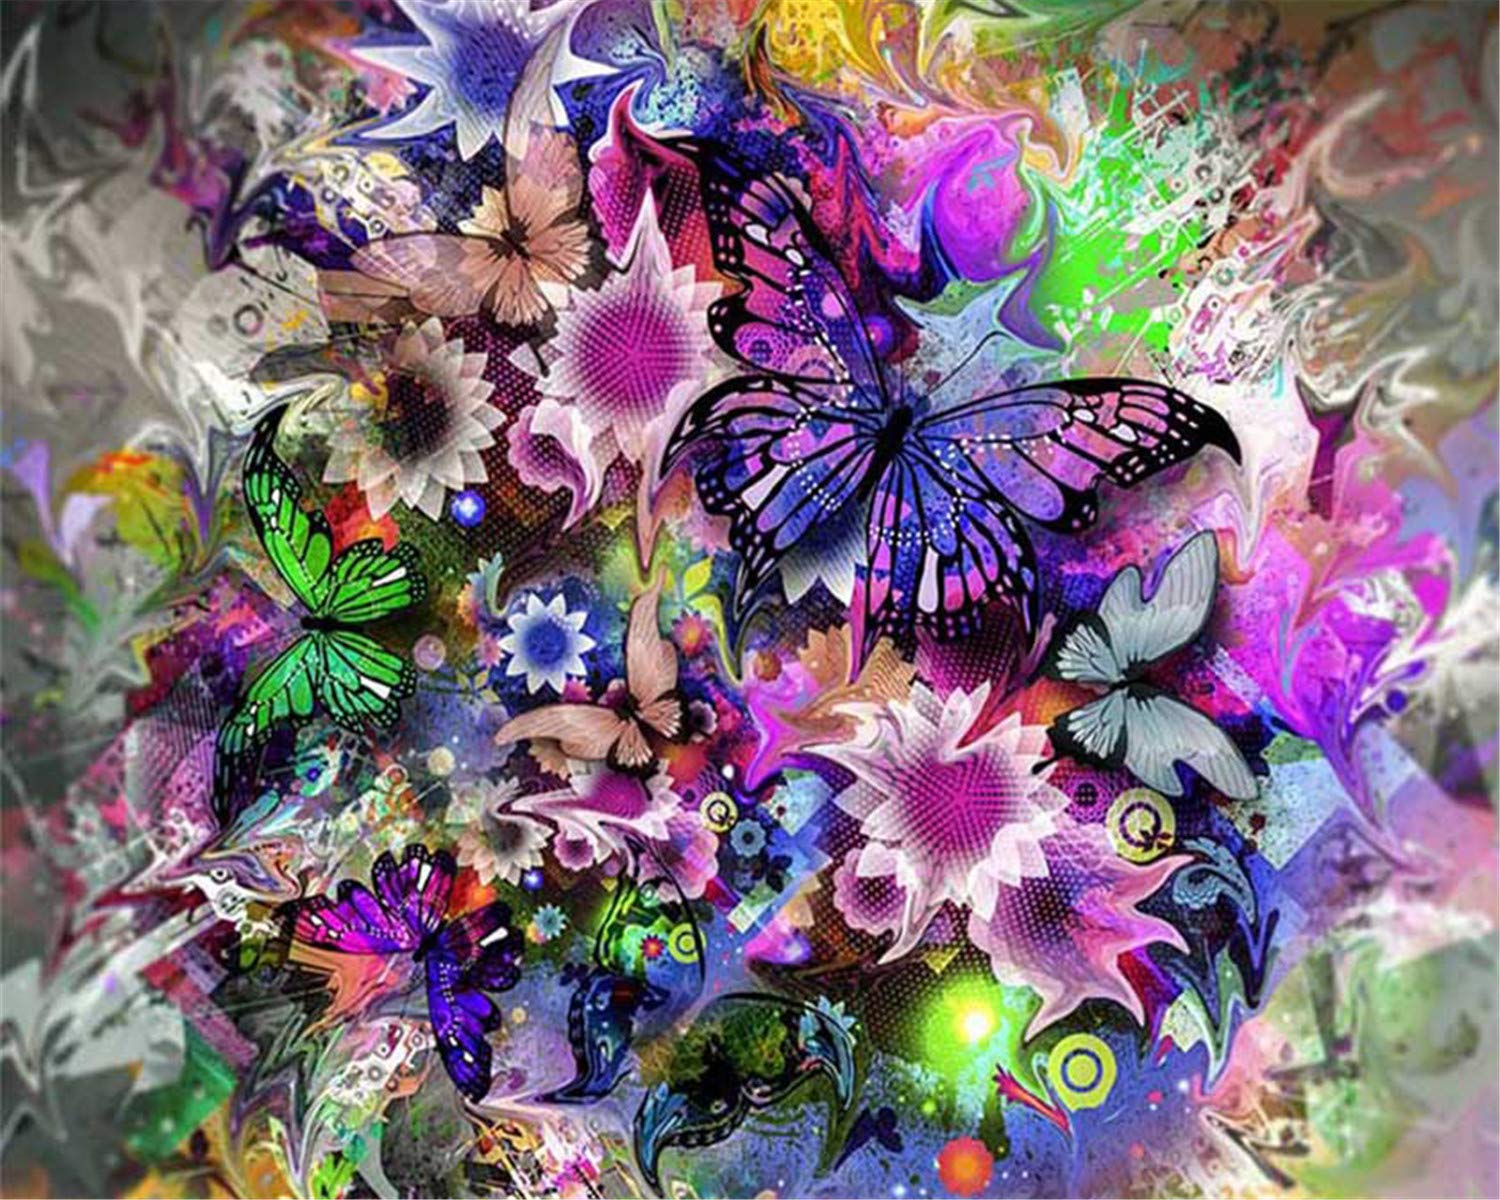 Full Drill Colorful Butterflies Crystal Rhinestone Embroidery Cross Stitch Kits Craft for Home Wall Decor 12x16inch EOBROMD DIY 5D Diamond Painting by Number Kits